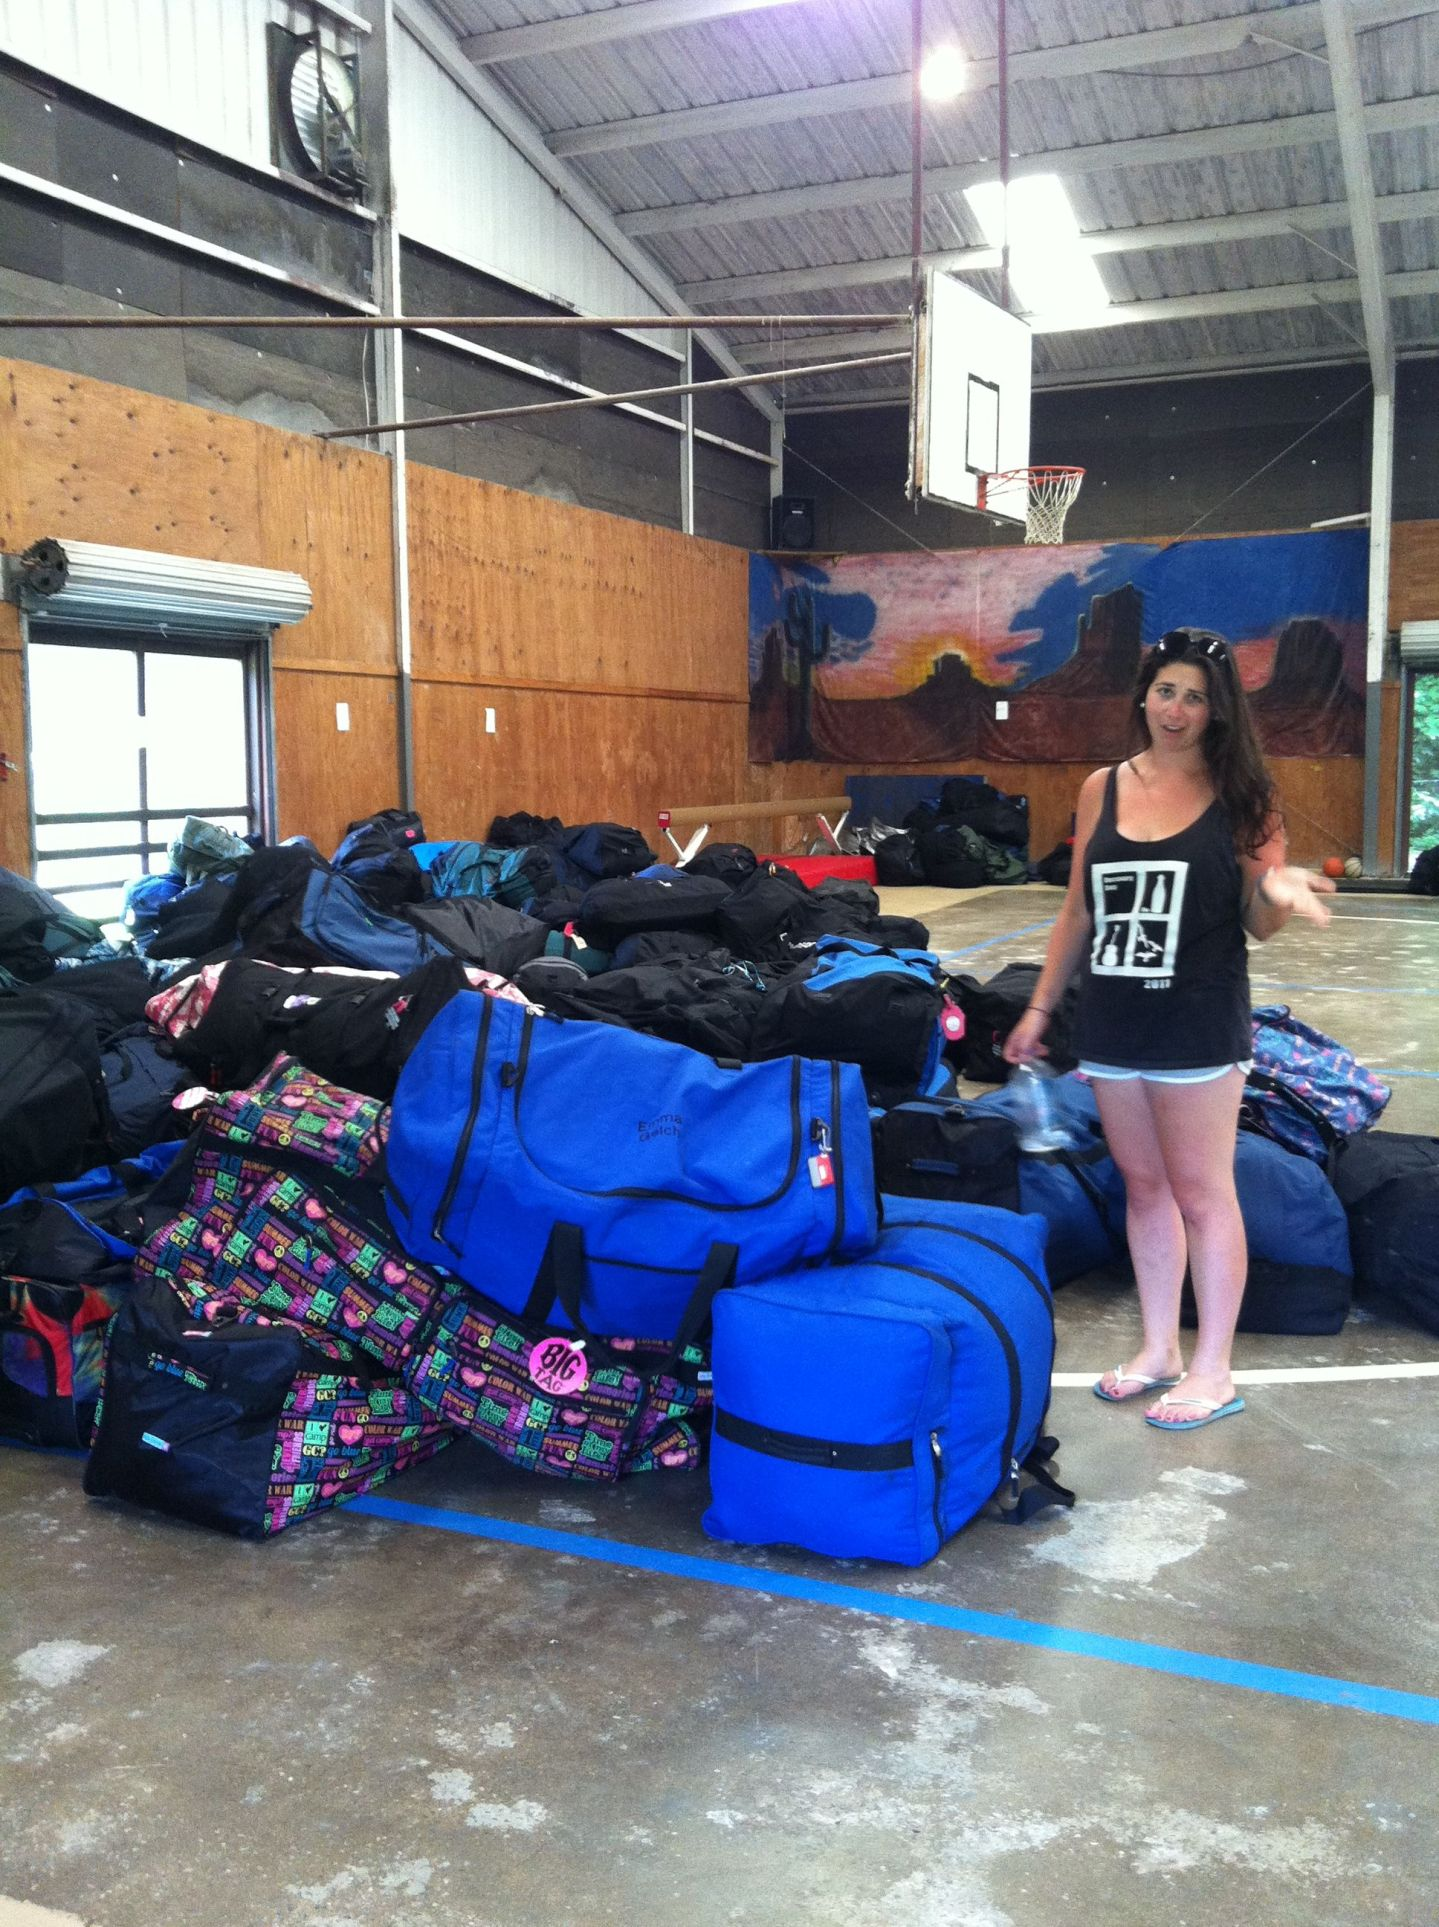 Simone with campers luggage